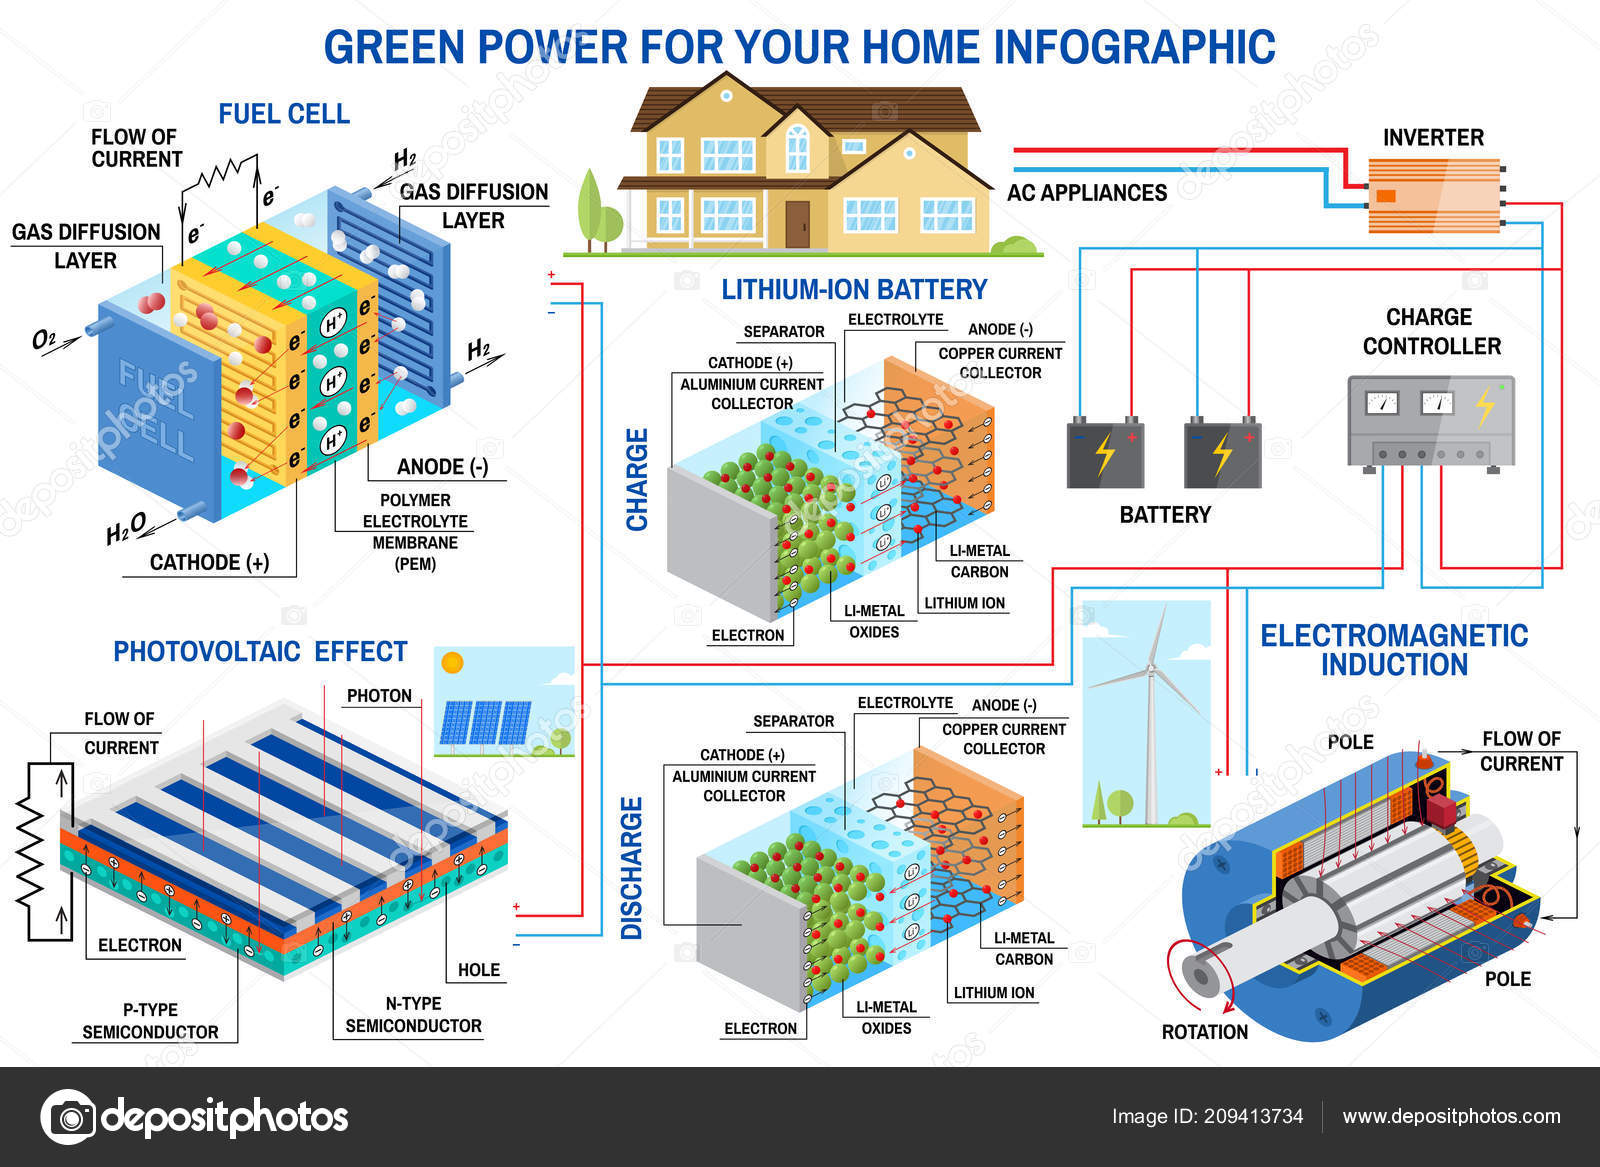 Solar Panel Fuel Cell And Wind Power Generation System For Home Battery Diagram Infographic Turbine Charge Controller Inverter Vector